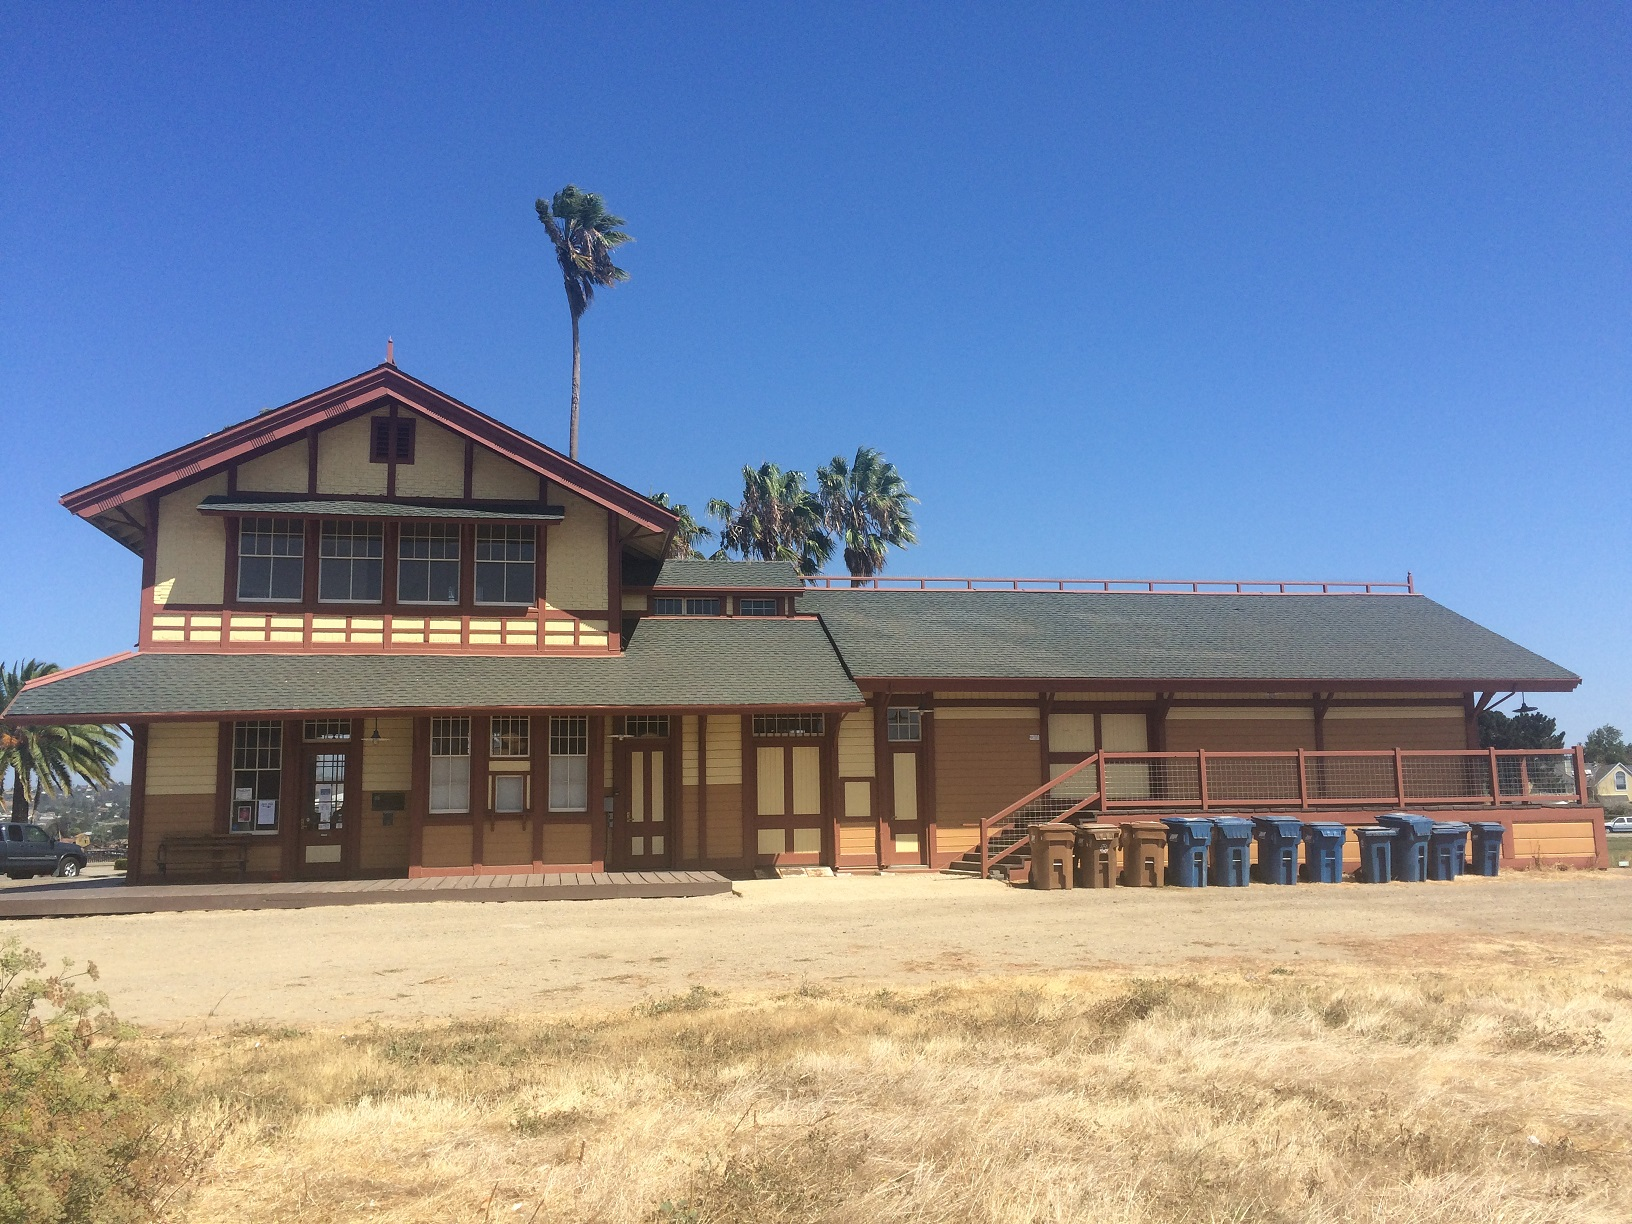 Southern Pacific Passenger Depot